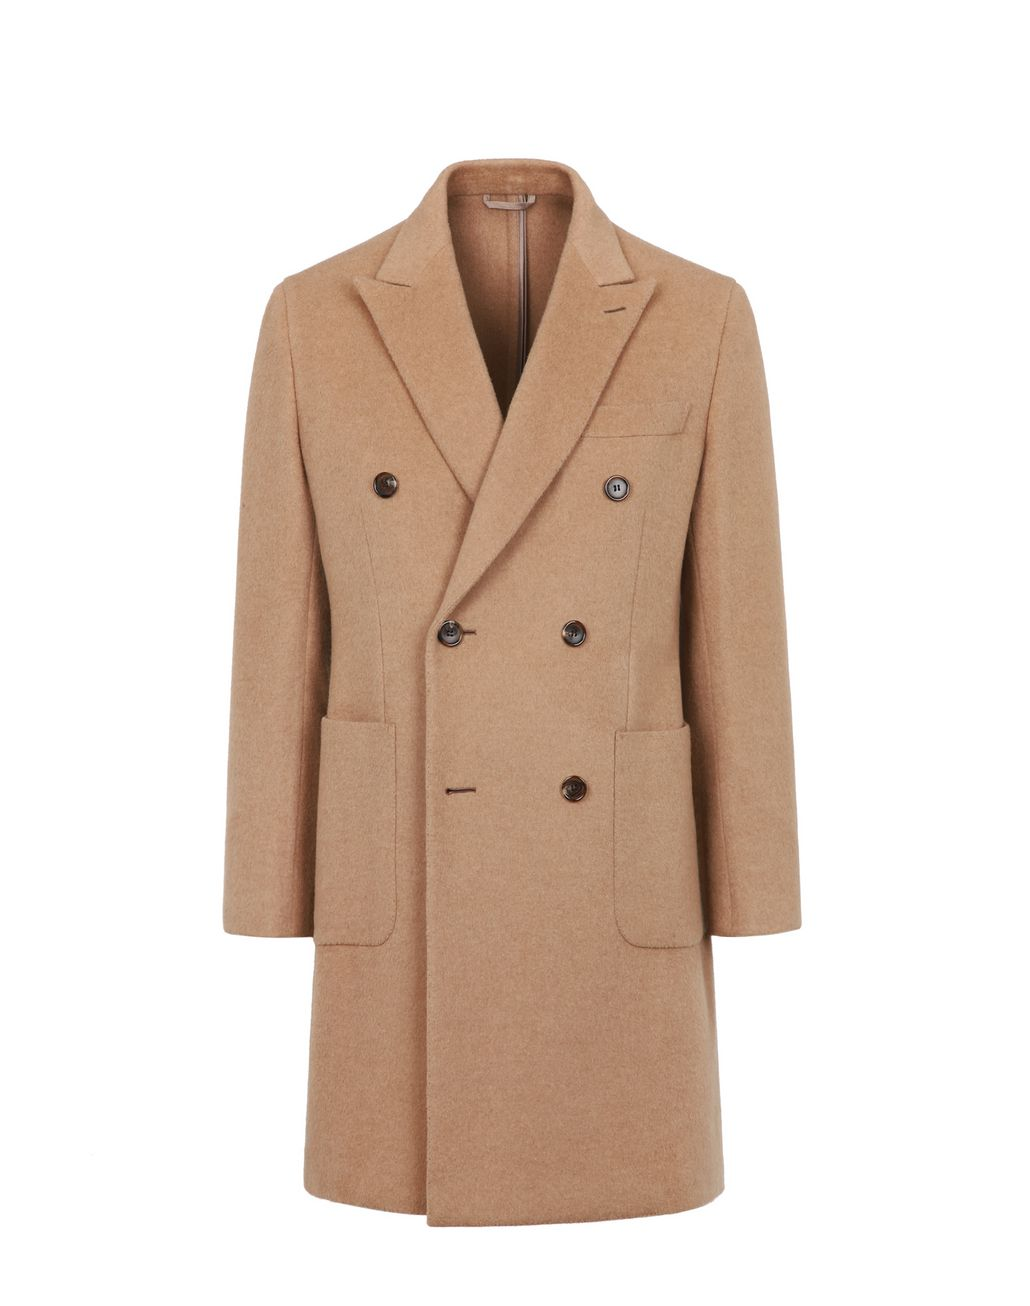 BRIONI Camel Double-Breasted Overcoat Coats & Raincoats Man f